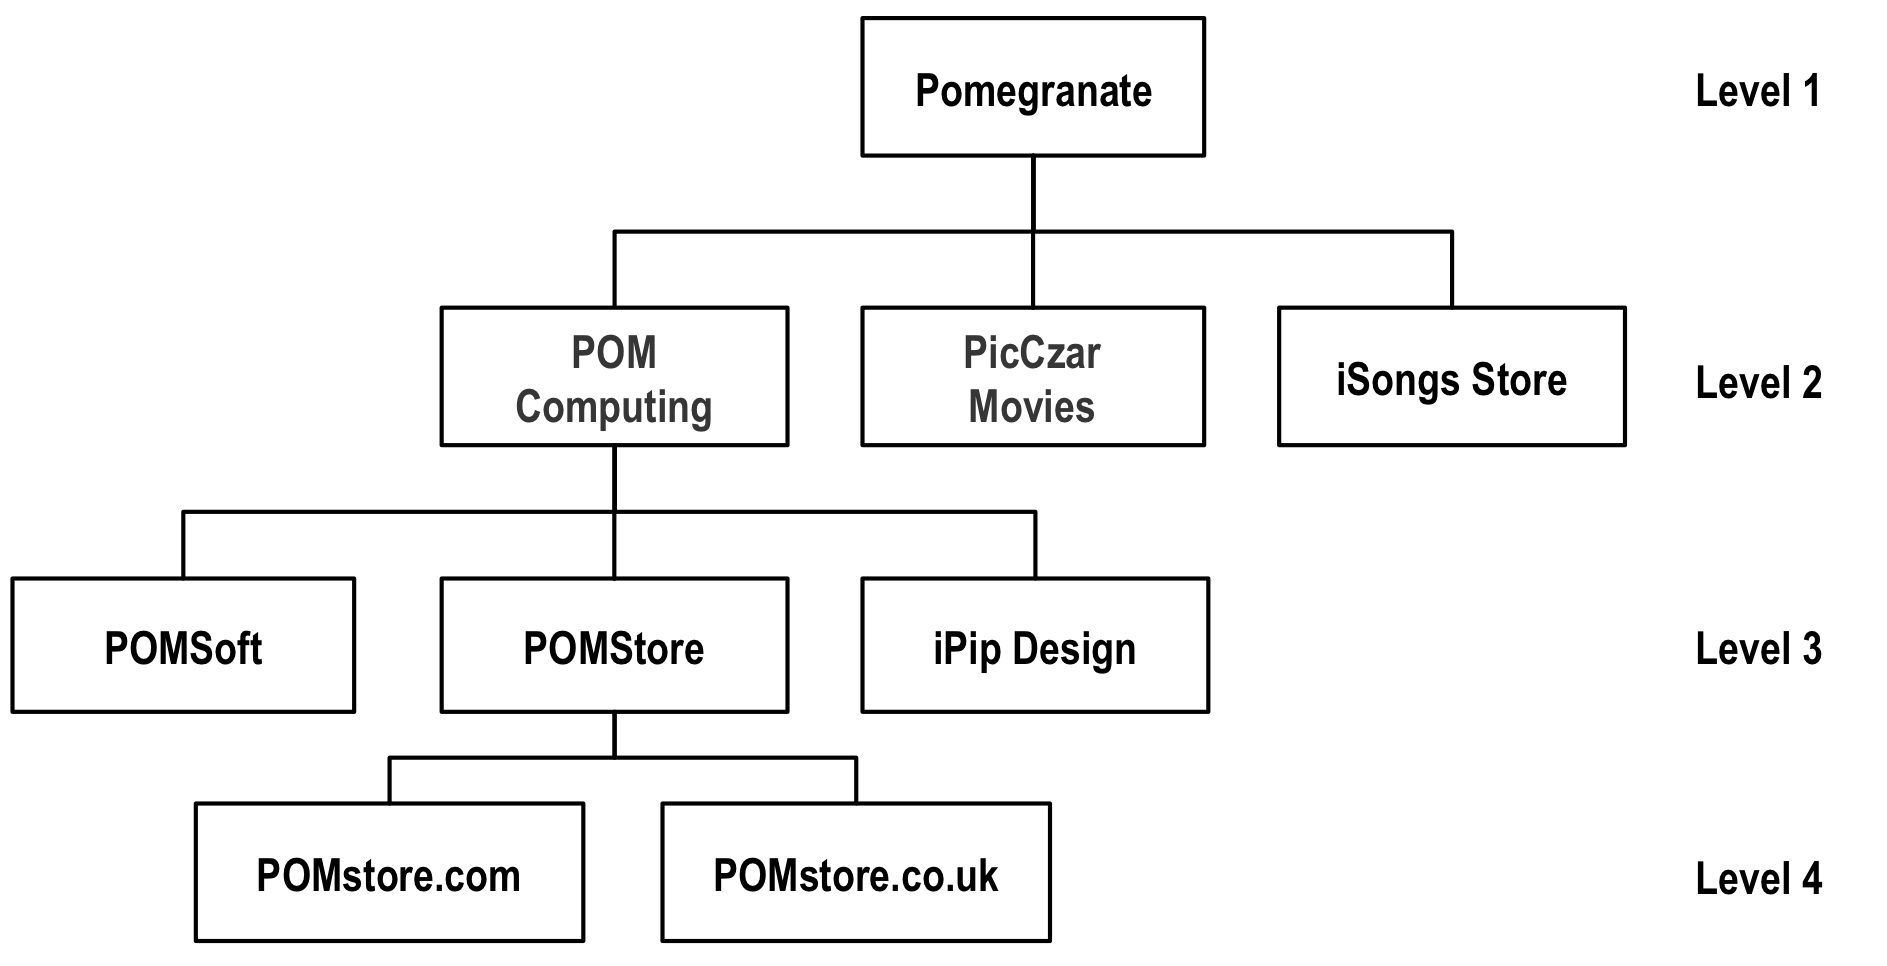 Pomegranate ownership hierarchy